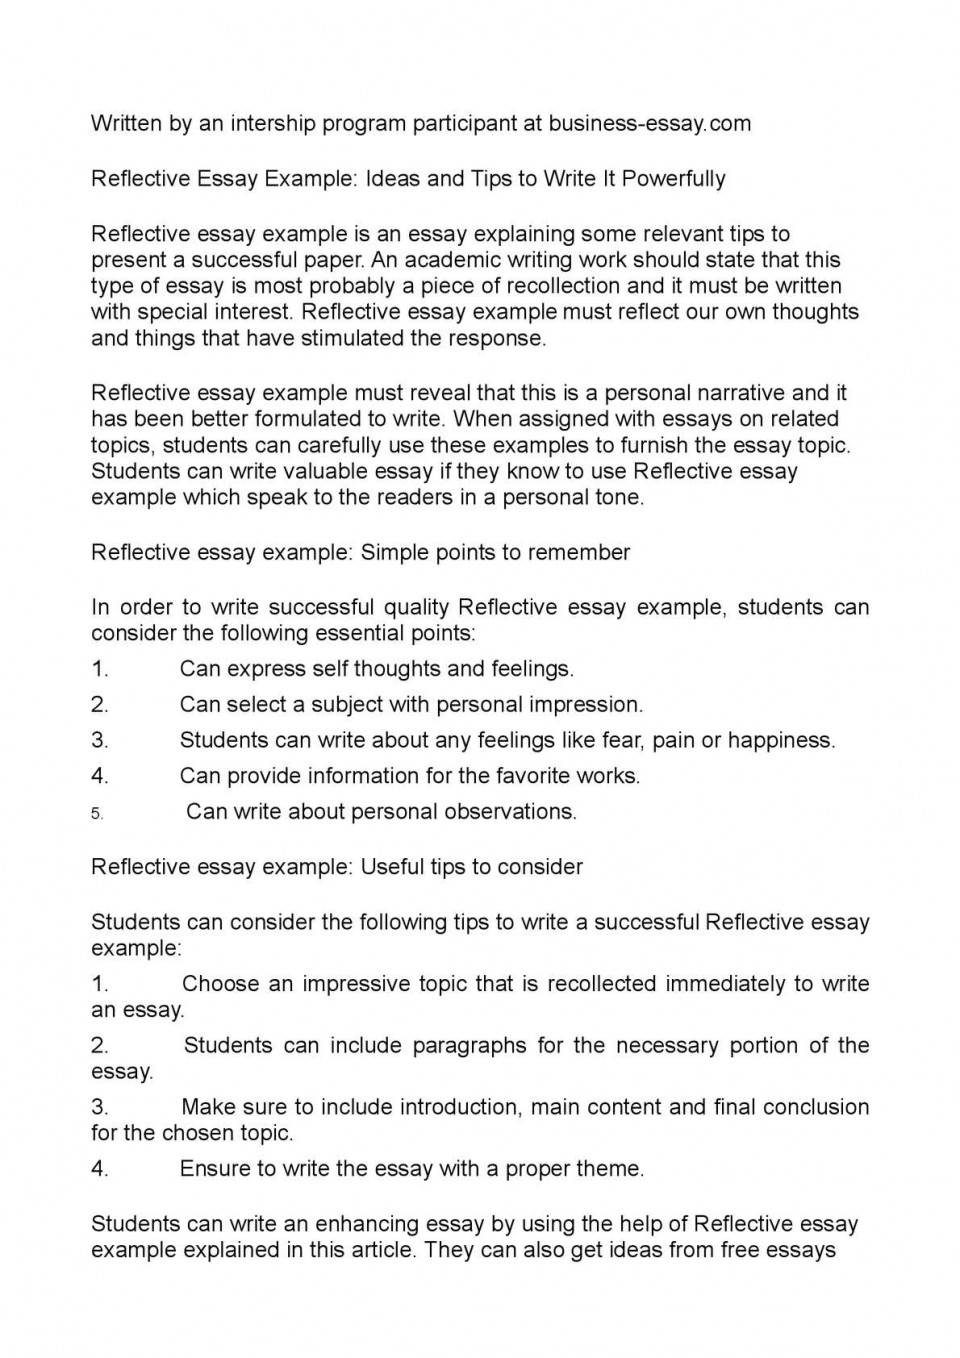 029 Reflective Essay Example Unforgettable Examples About Life Pdf High School Students Apa 960